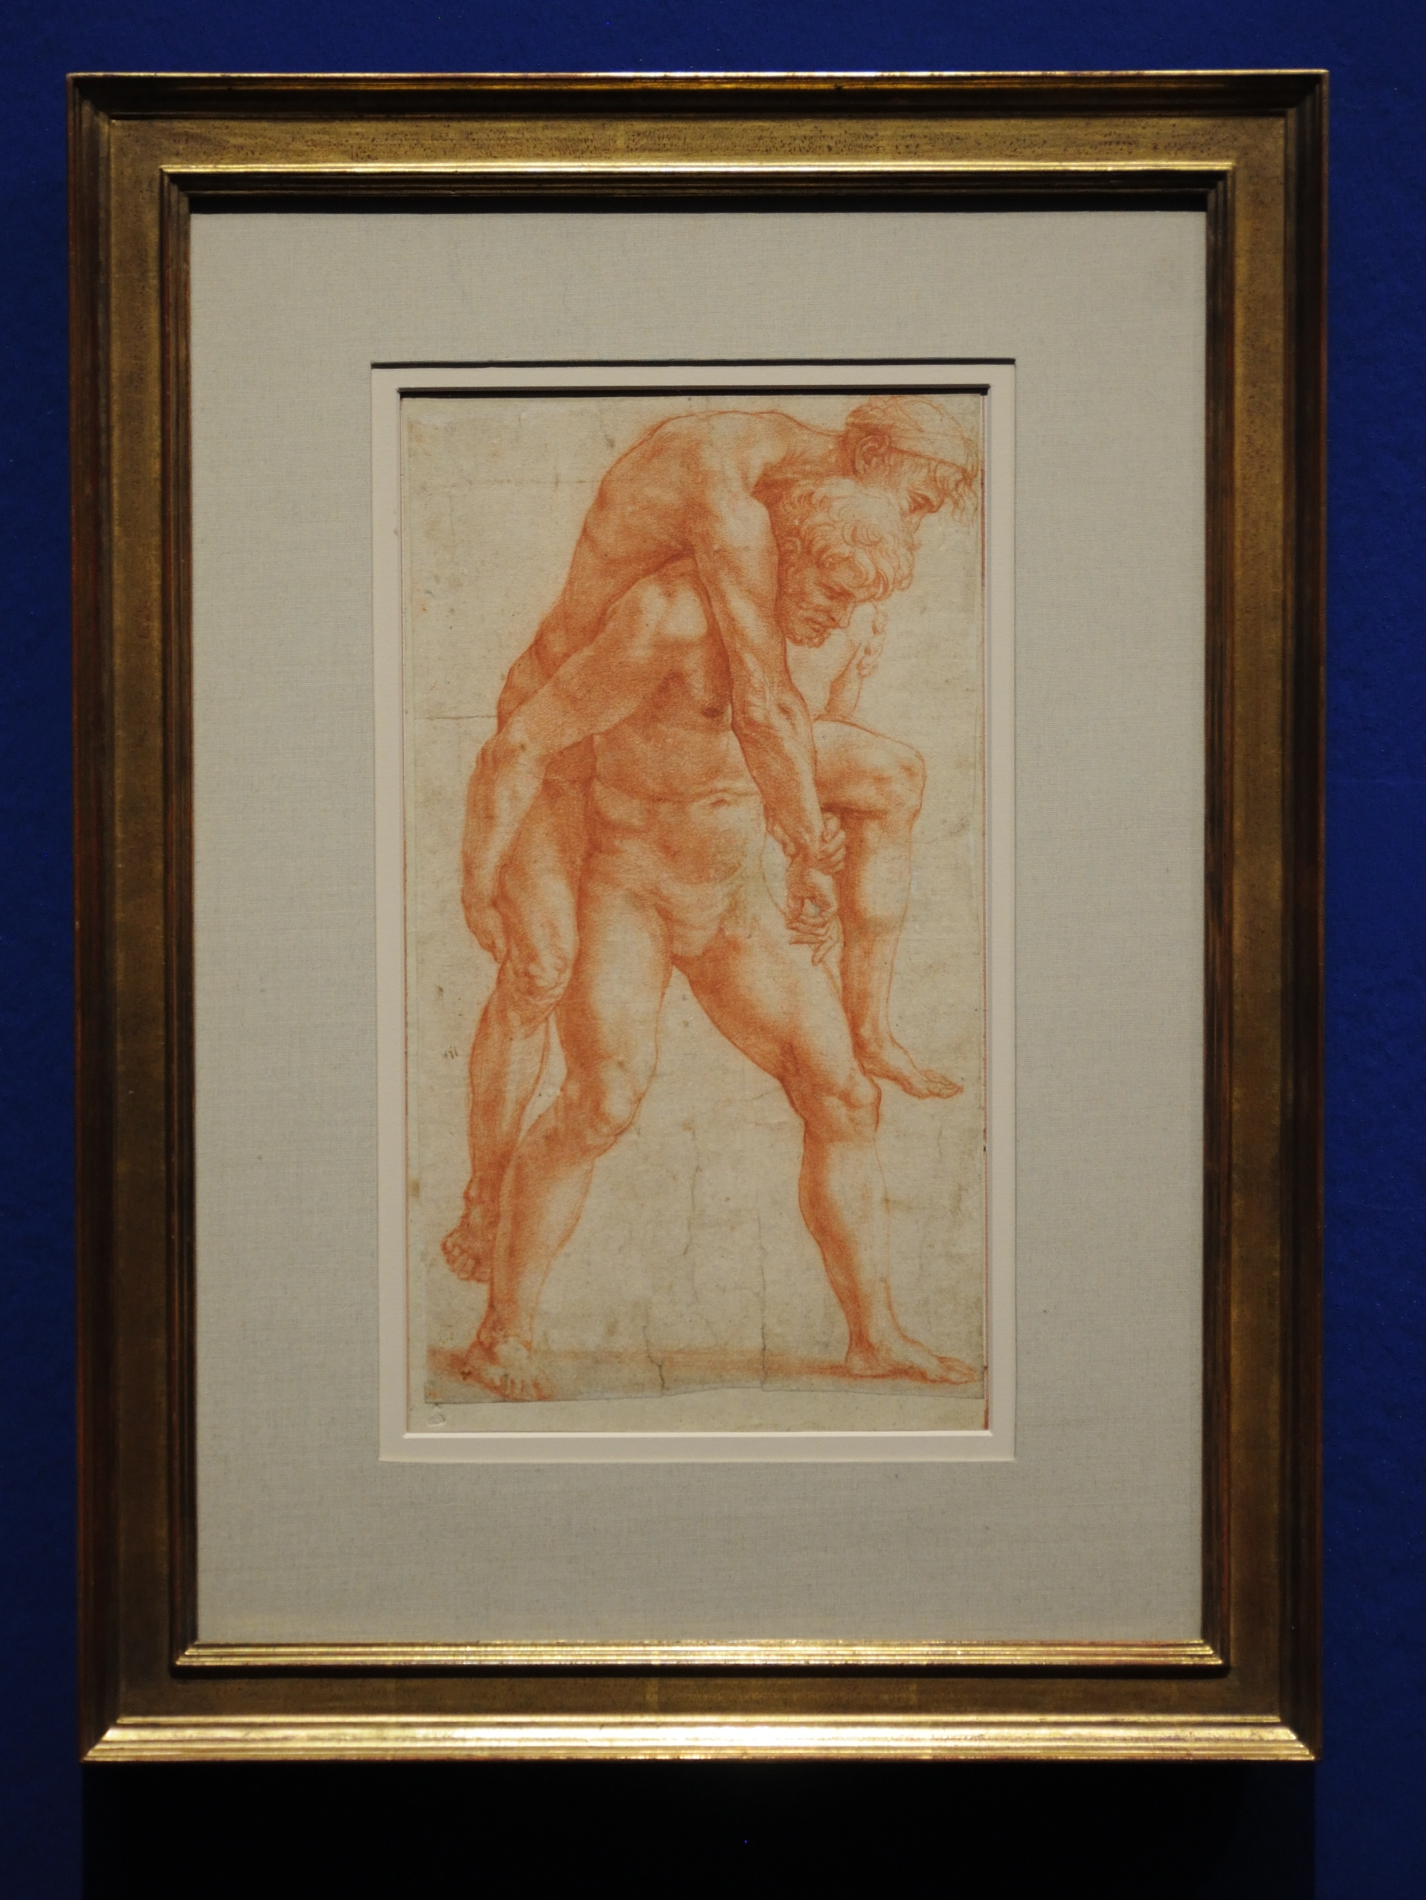 Nude studies for the Fire in the Borgo